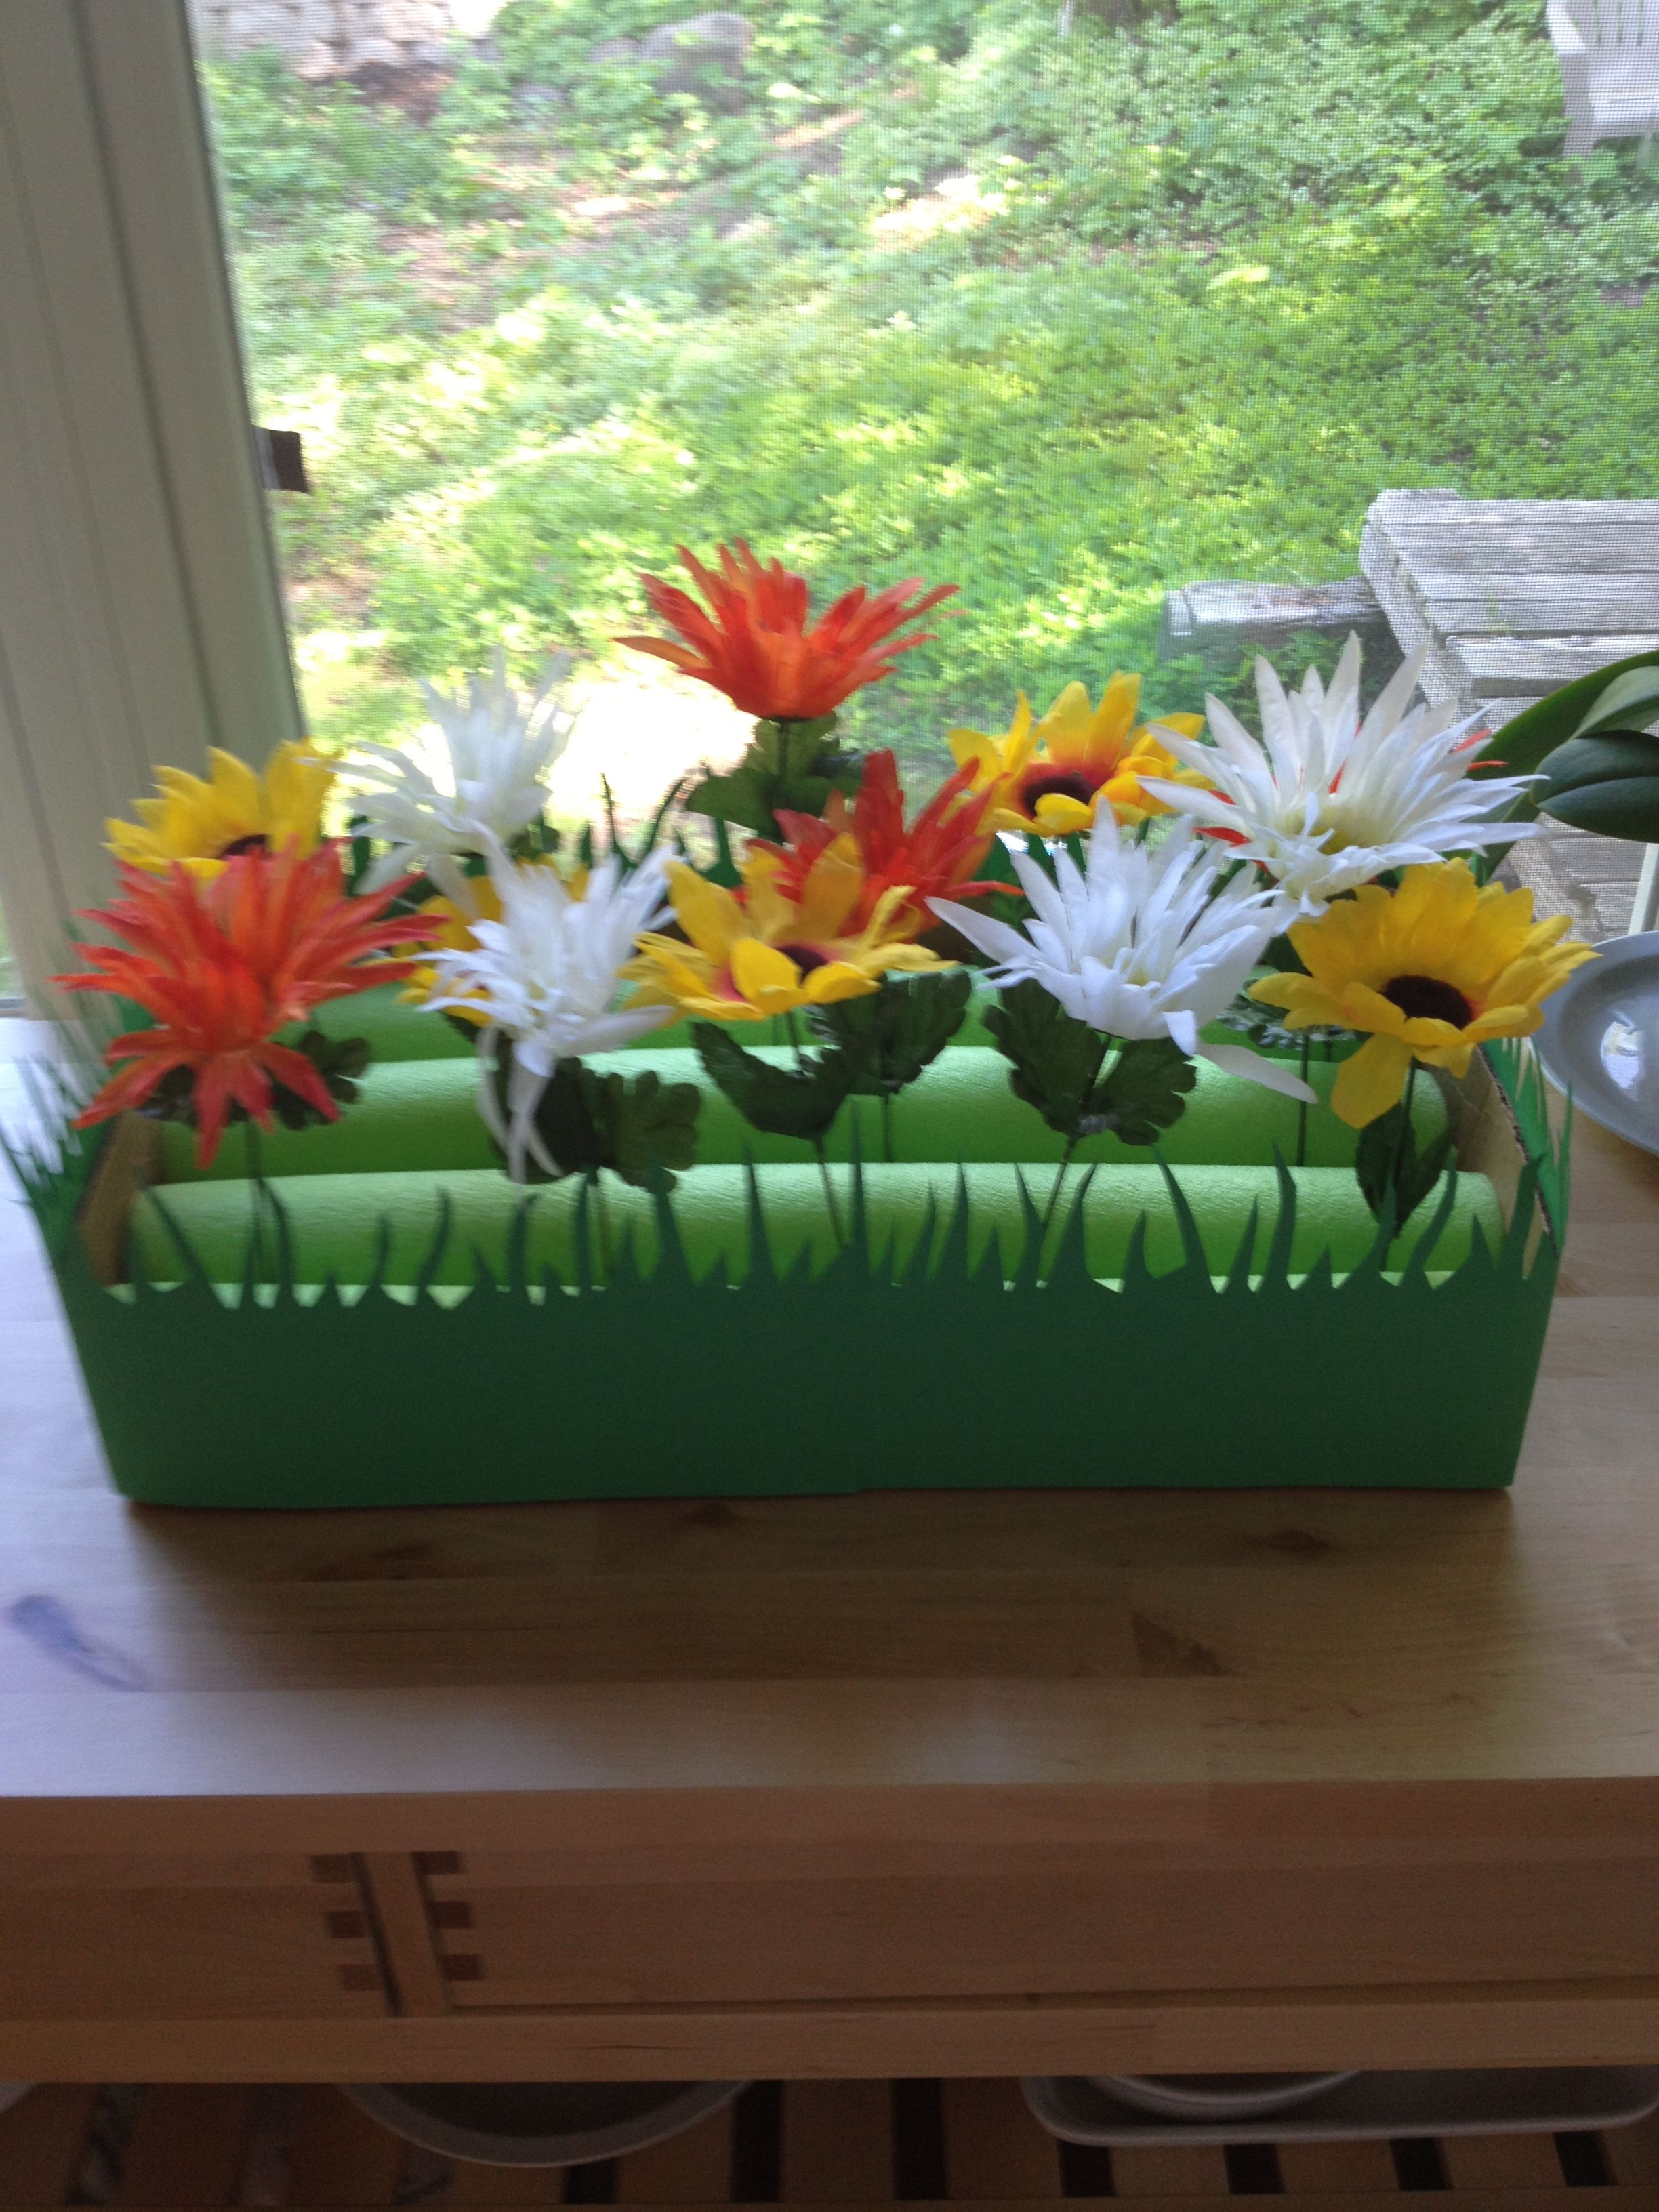 Flower Garden Sensory Box Cardboard Box With Pool Noodles Cut In Half Kids Can Plant Fake